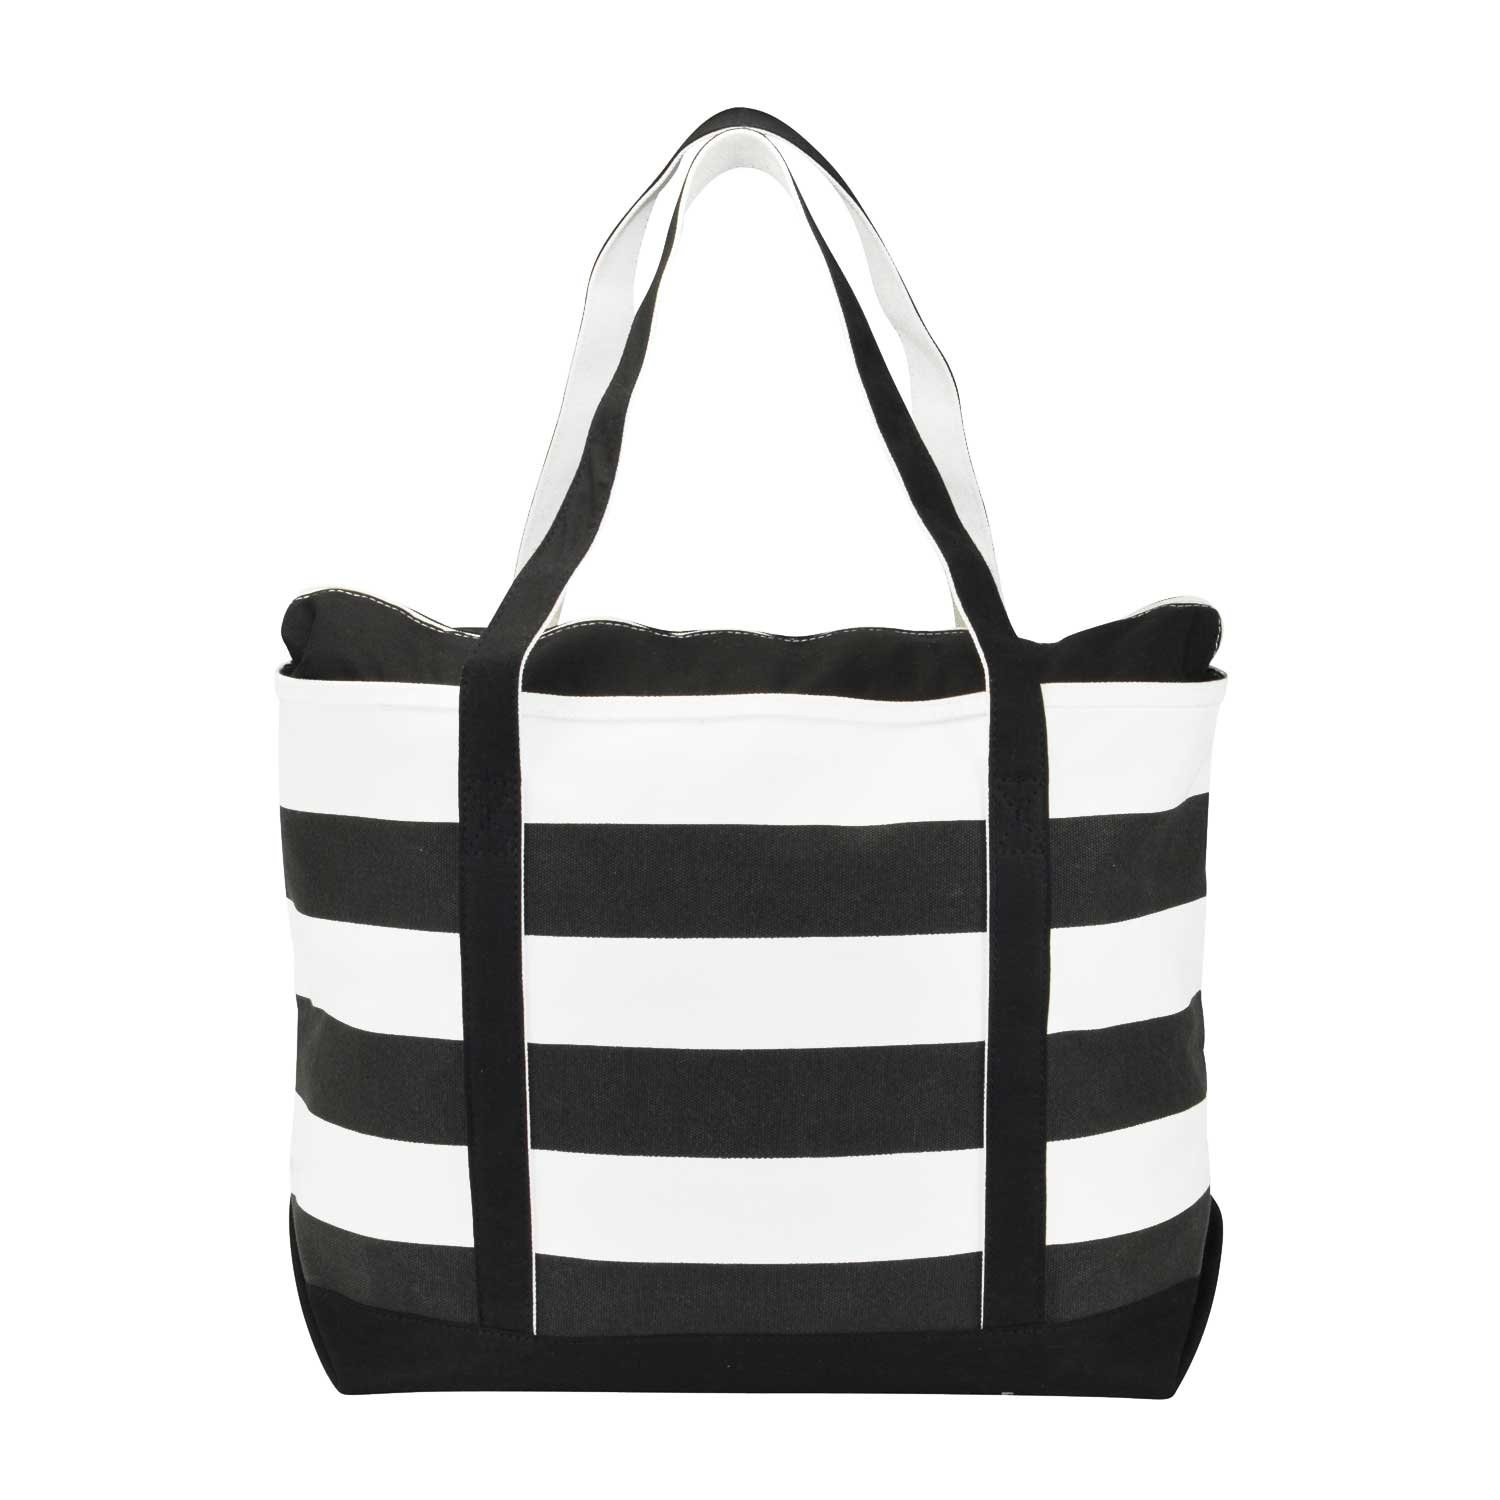 navy black and white pictures for bathrooms. Amazon com  DALIX Striped Boat Bag Premium Cotton Canvas Tote in Black Travel Totes